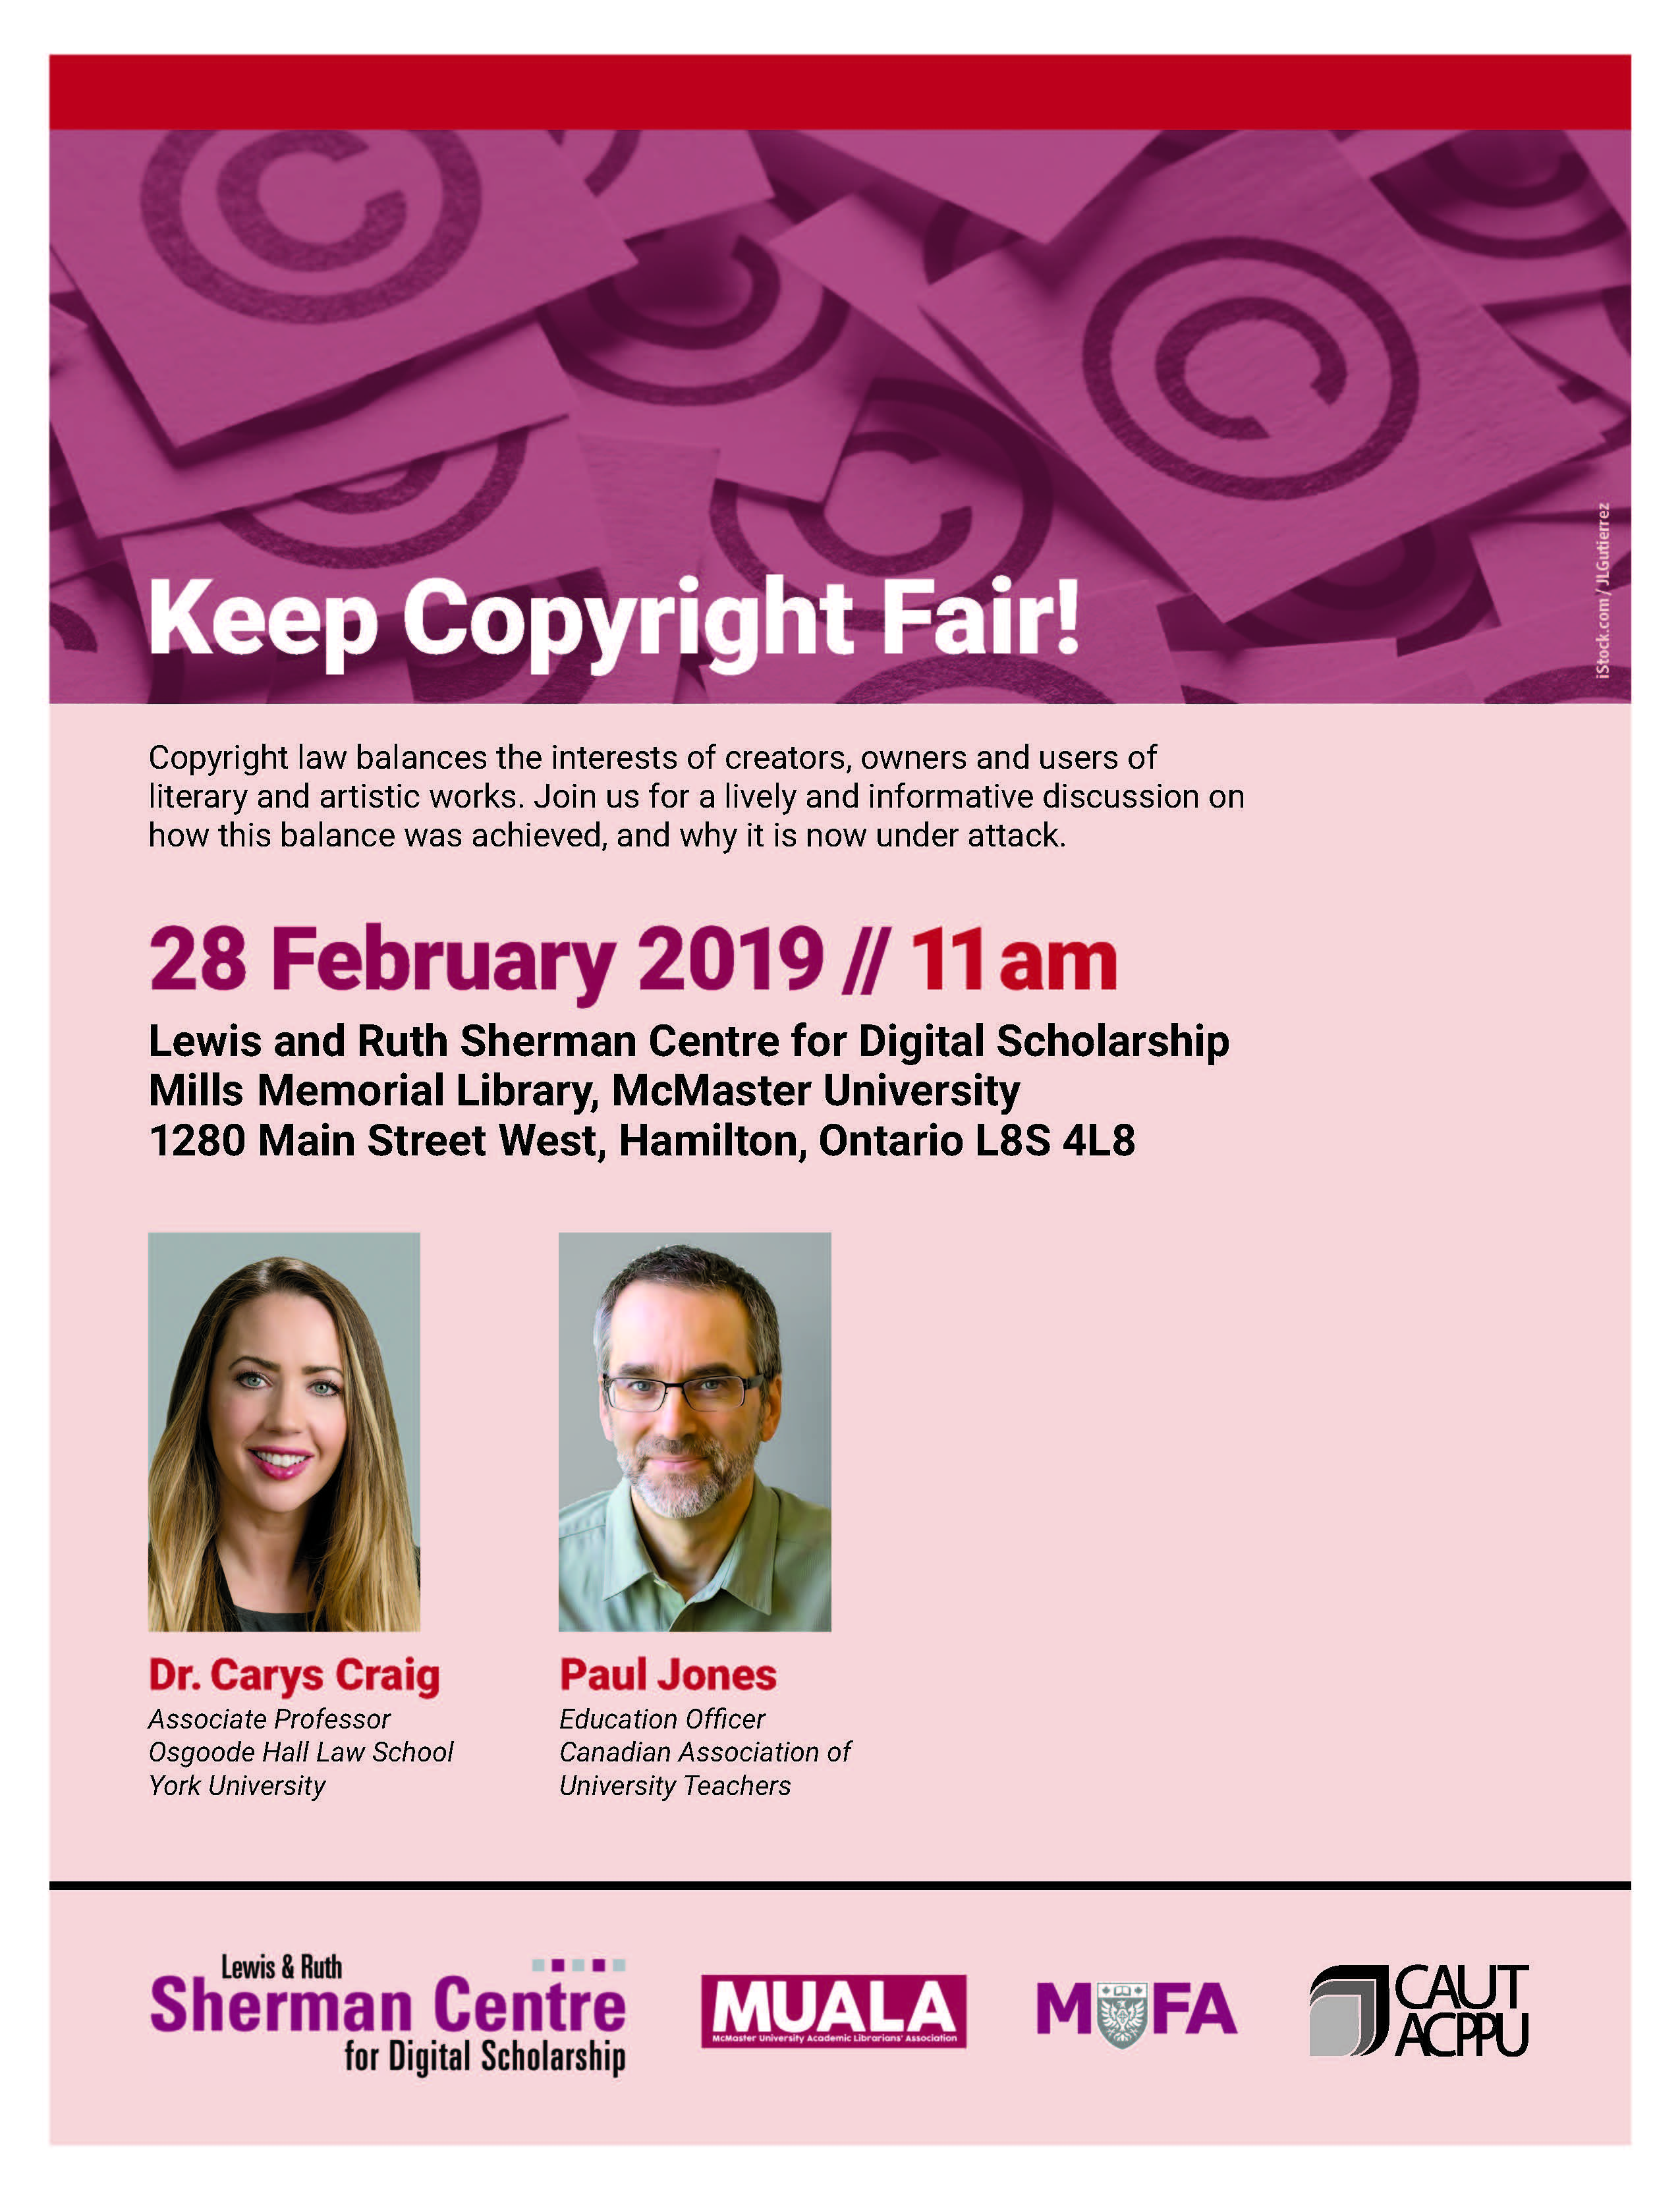 Poster promoting the Keep Copyright Fair event